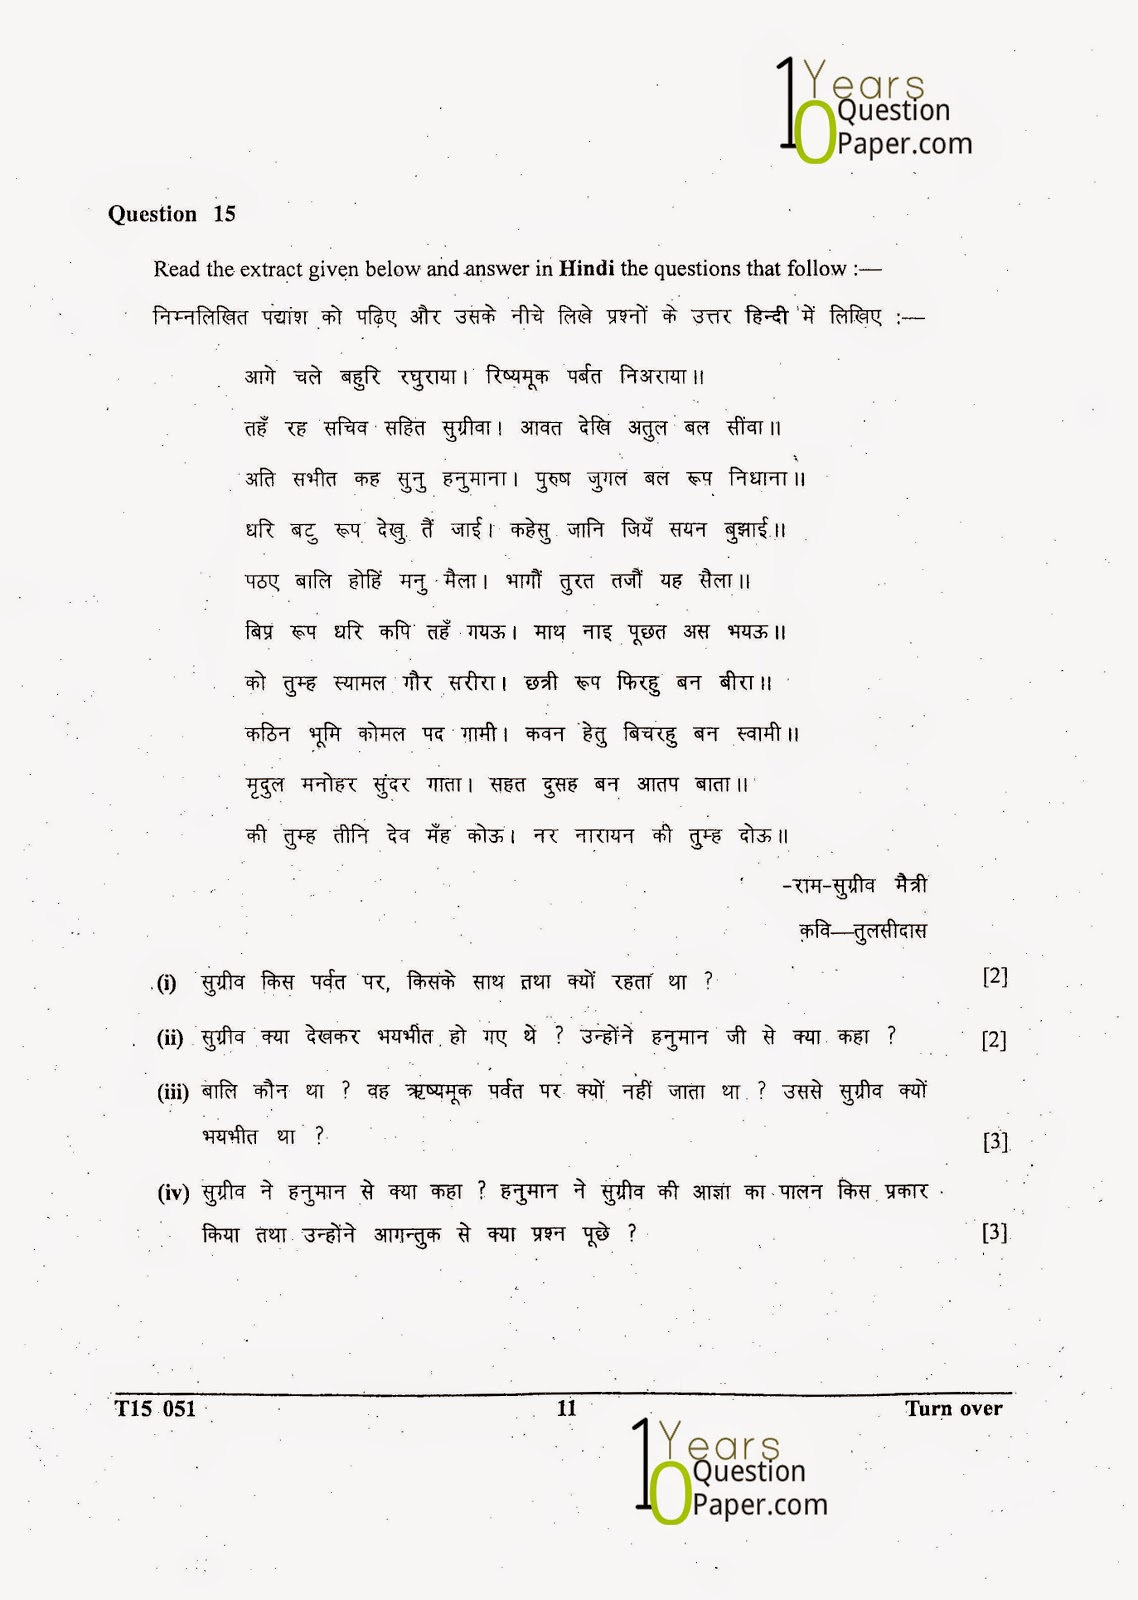 Worksheet Comprehension Passages For Grade 5 worksheet comprehension passages for grade 5 mikyu free hindi class 3 download ncert cbse icse